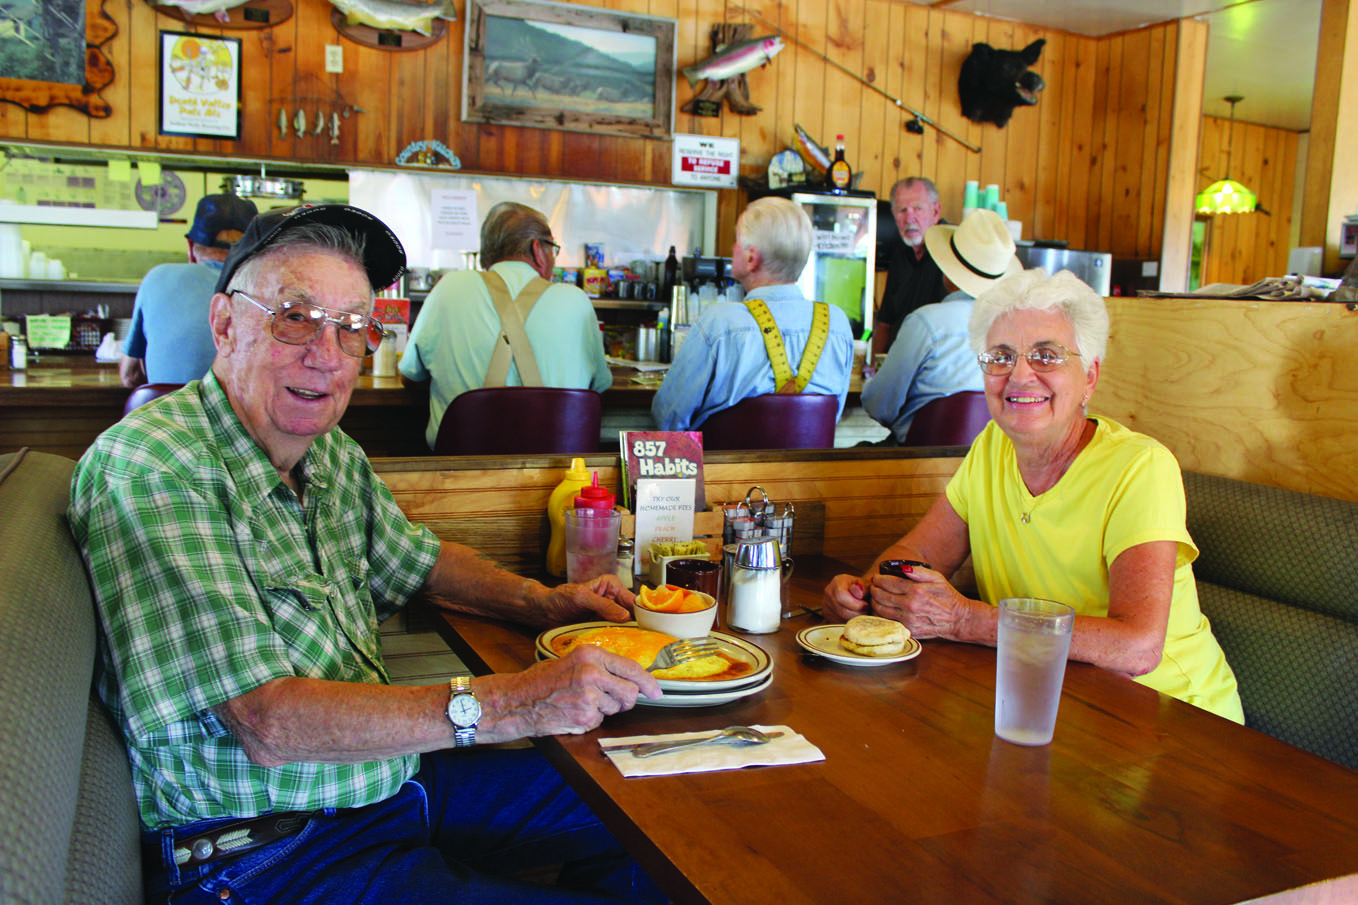 Joe and Virgina MacLeod, residents of Big Pine for over 40 years, enjoy having breakfast regularly at the Country Kitchen. Joe has been coming to the area since 1935 edit web